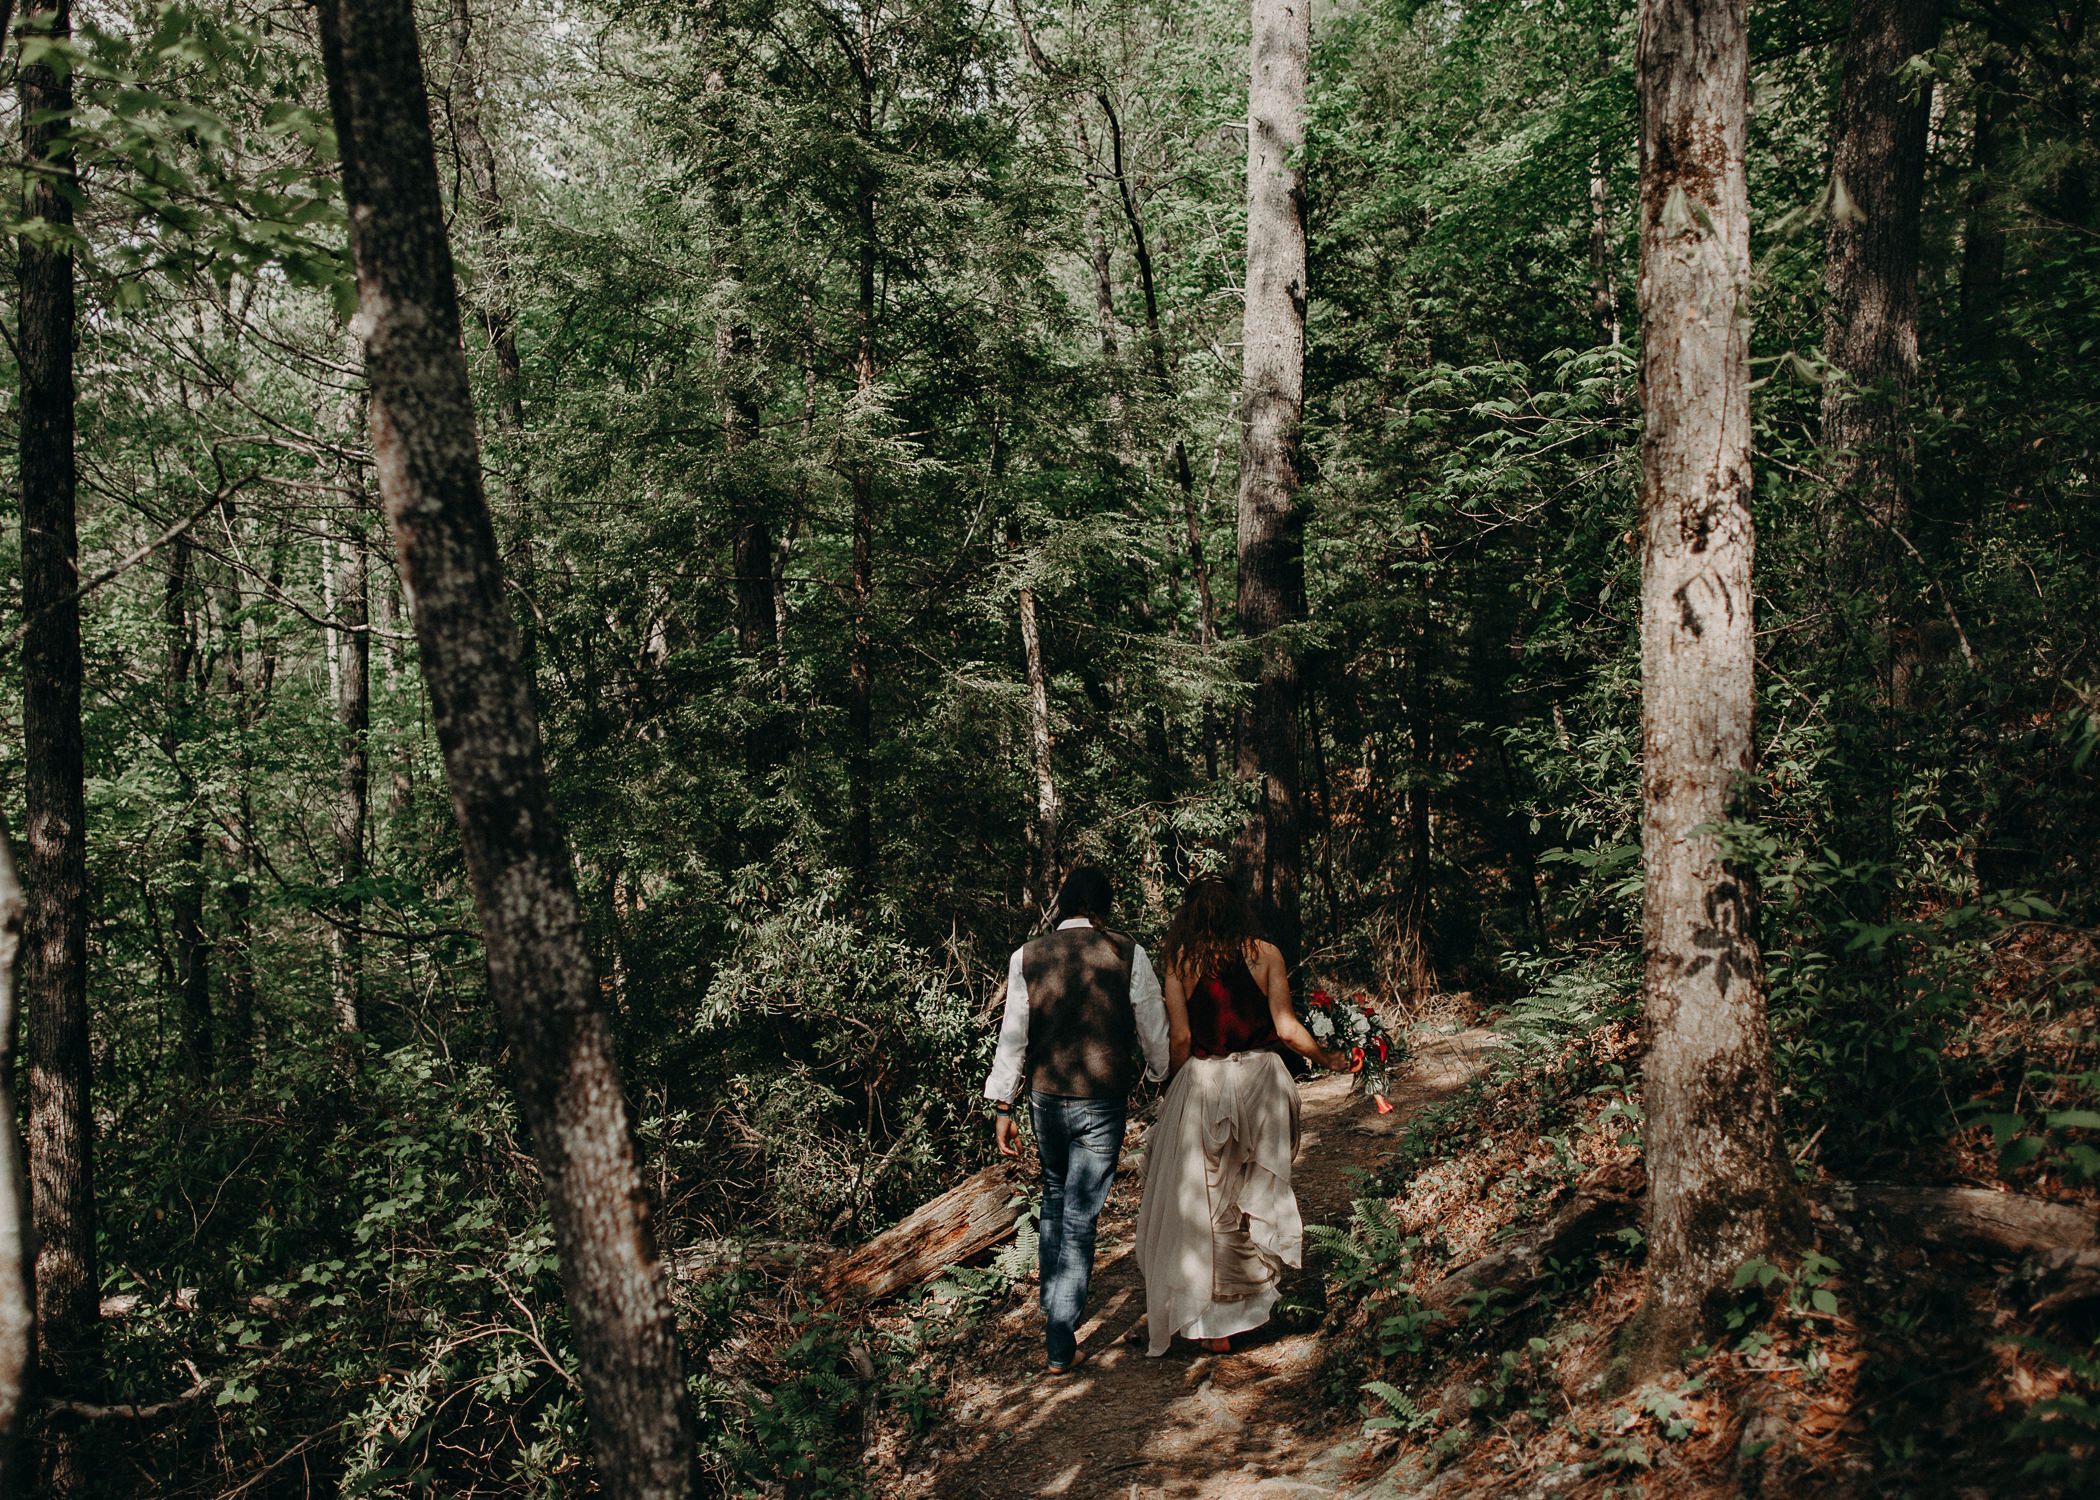 50- Forest wedding boho enchanched fairytale wedding atlanta - ga , intimate, elopement, nature, greens, good vibes. Aline Marin Photography .jpg